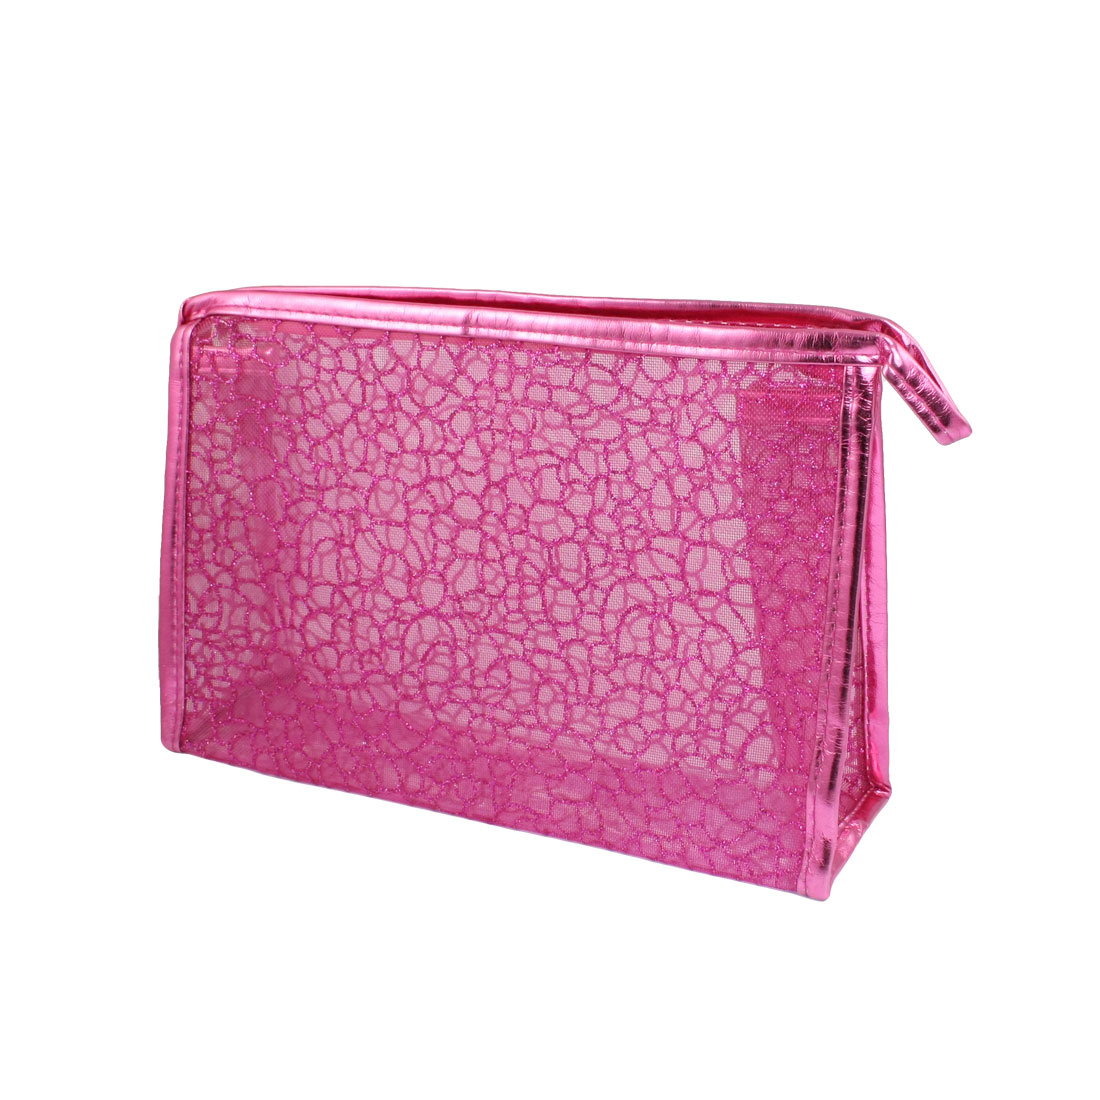 Rectangle Shaped Fuchsia Glittery Mesh Cosmetic Makeup Bag Holder for Lady Women